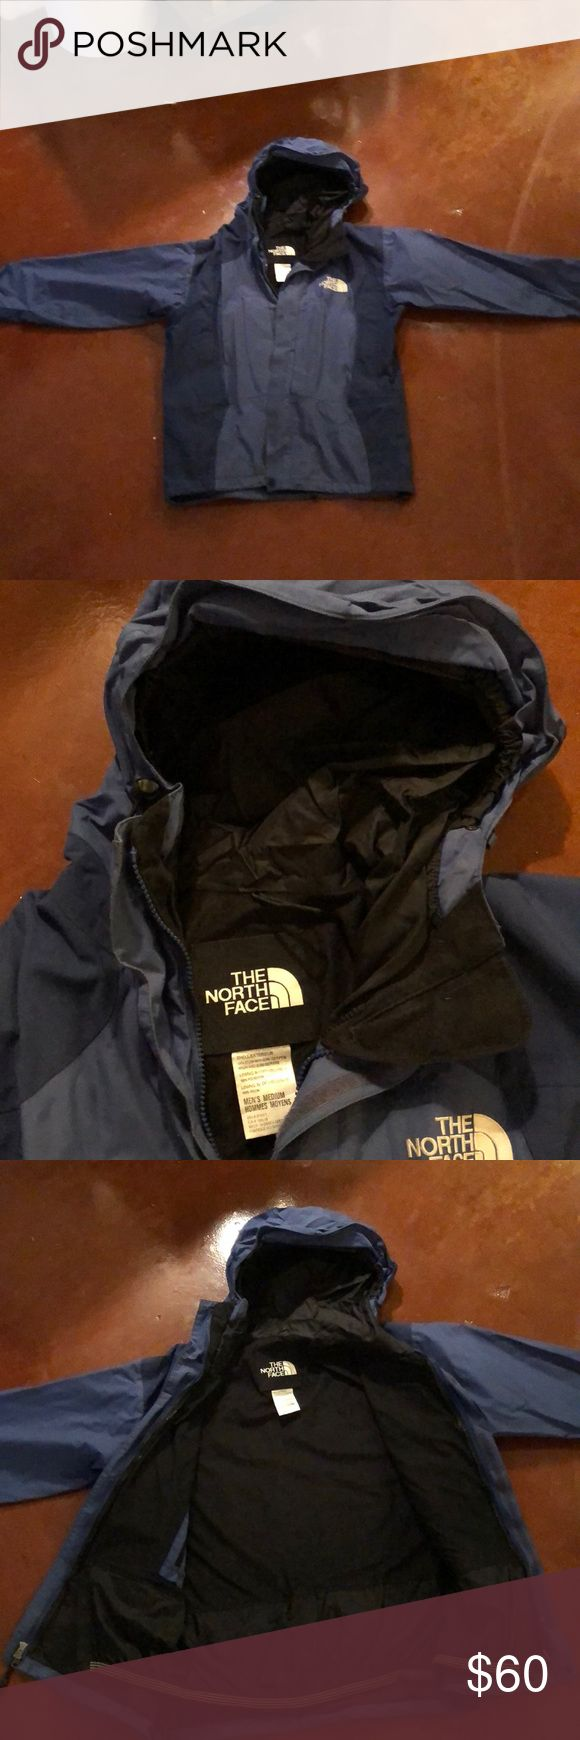 NorthFace Men's Winter/Ski/Snowboard Jacket. Sale The North Face Mens winter jacket. Perfect for skiing or snowboarding. Really great color blue. Heavy Shell. Layer underneath as needed with a fleece etc. Gortex. Gently worn. Size Medium. The North Face Jackets & Coats Ski & Snowboard